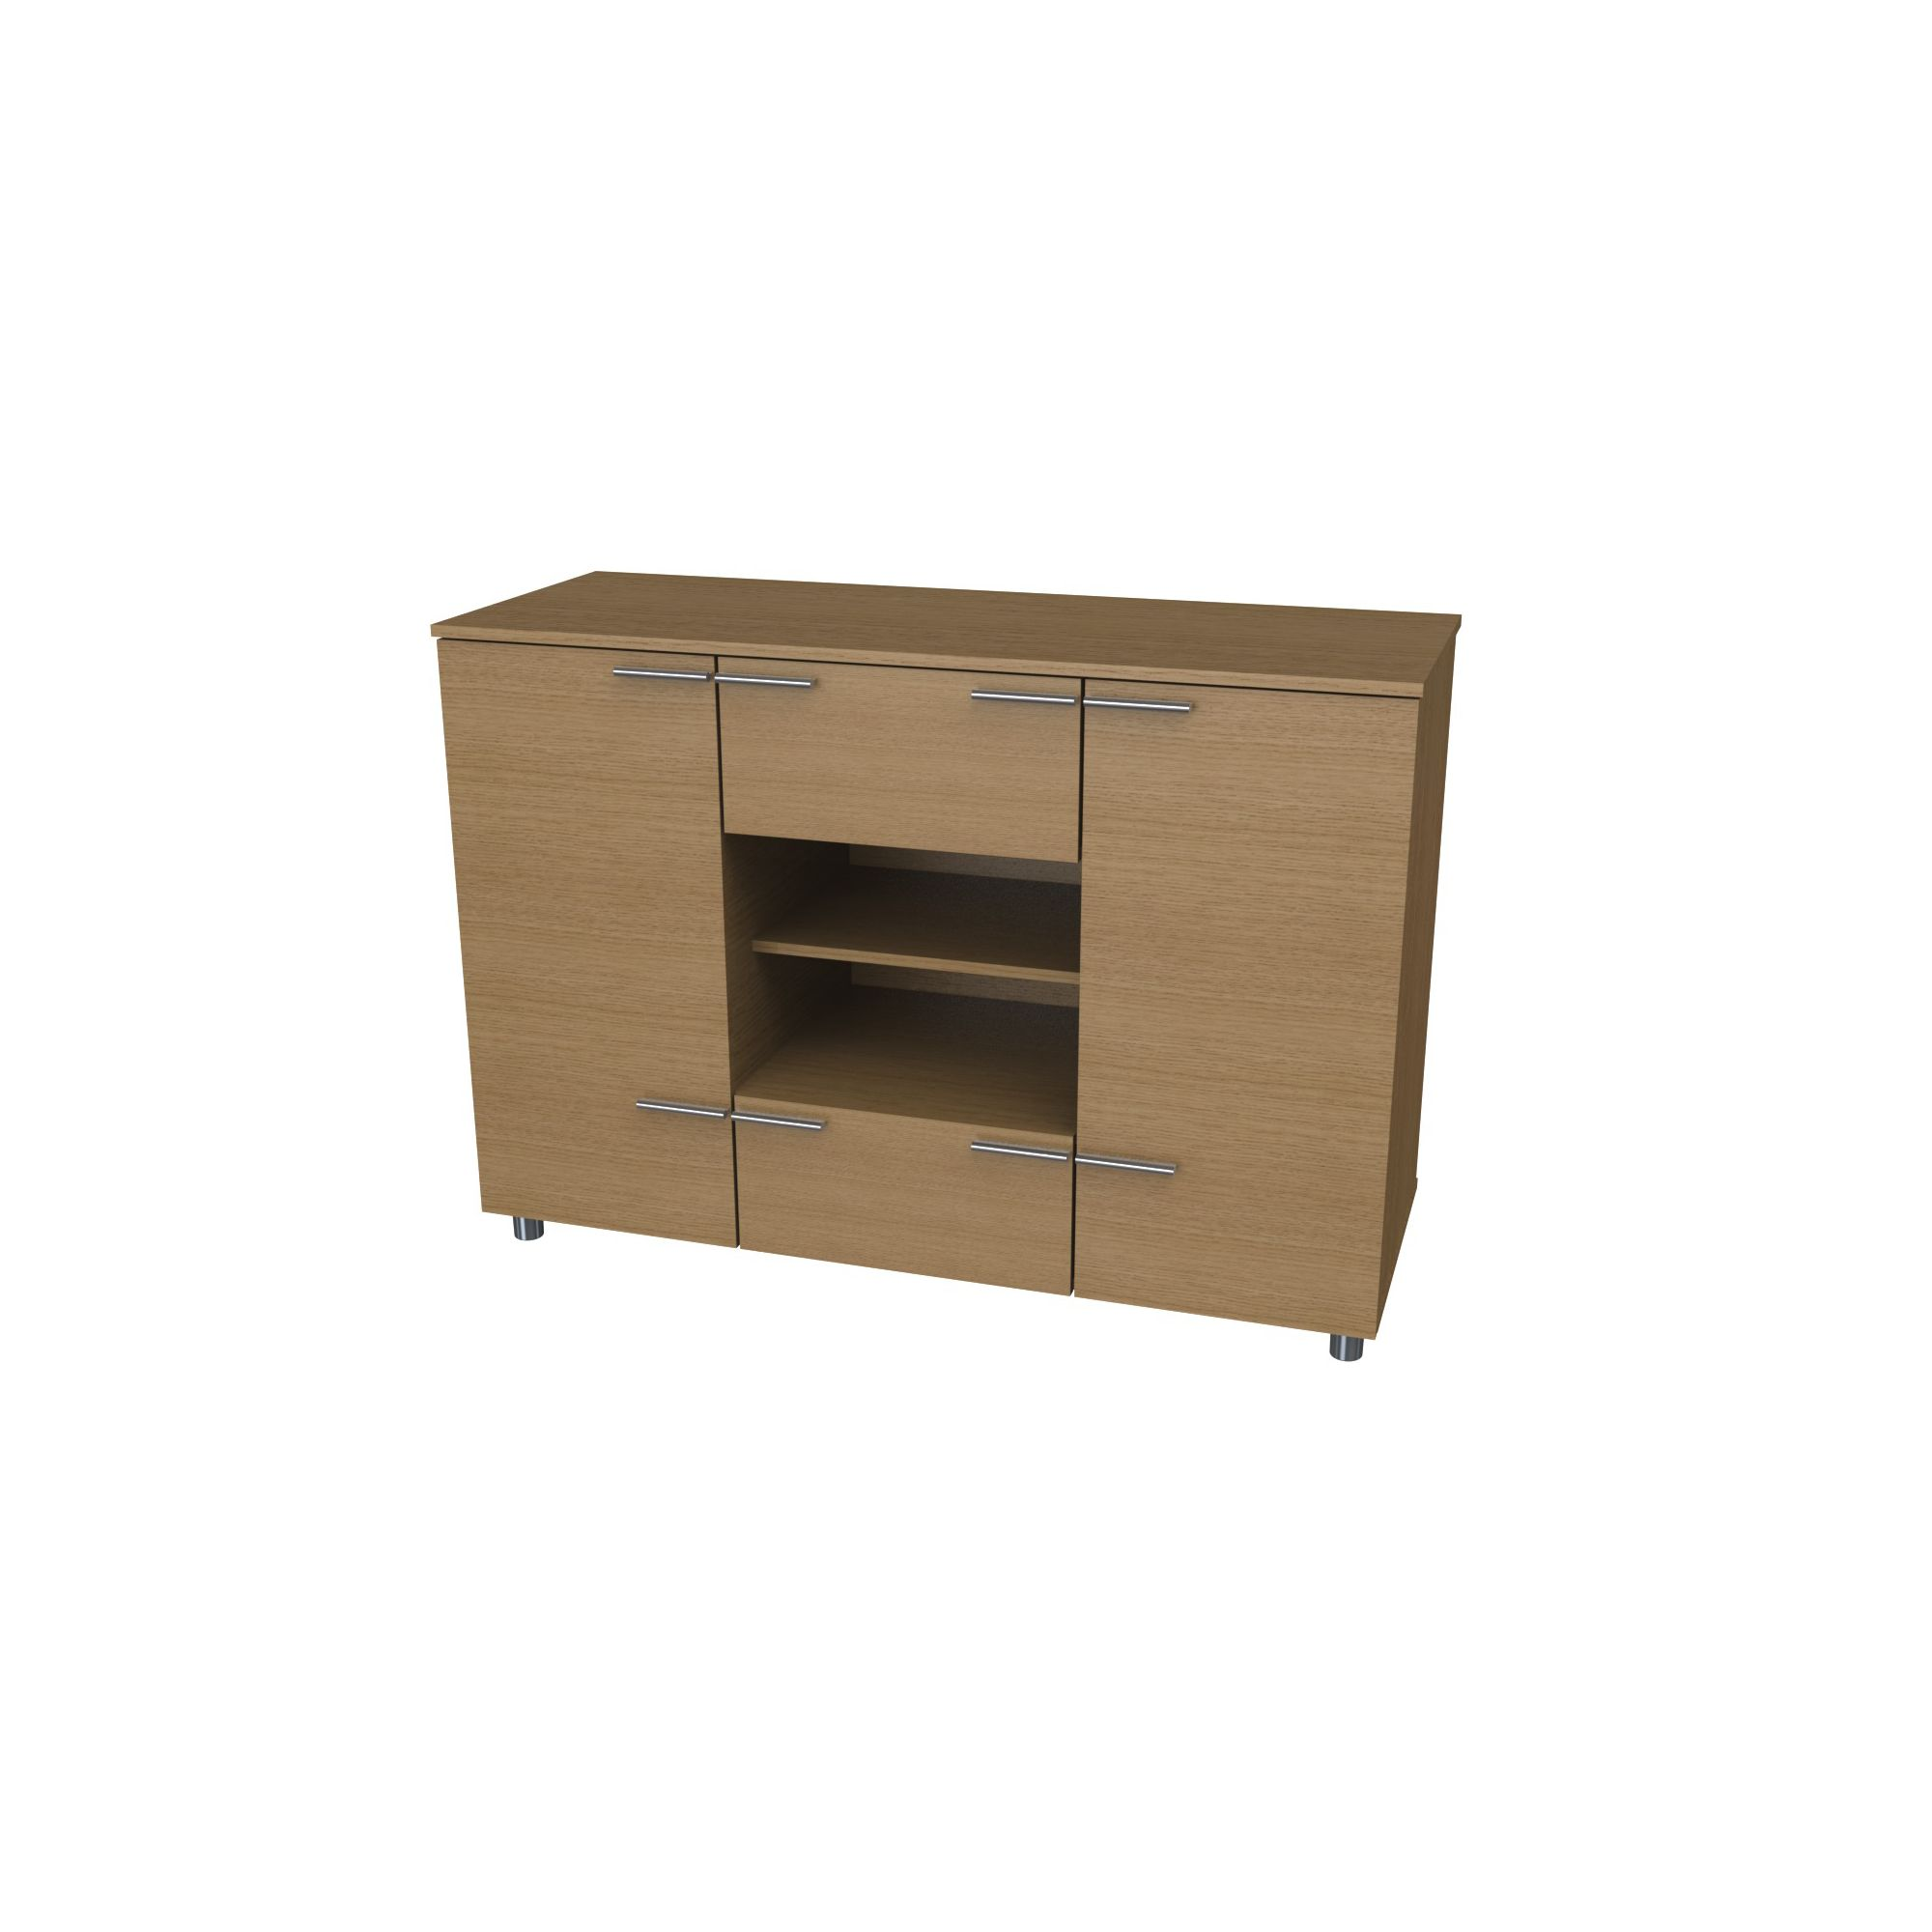 Ashcraft Chester Sideboard - Oak at Tescos Direct